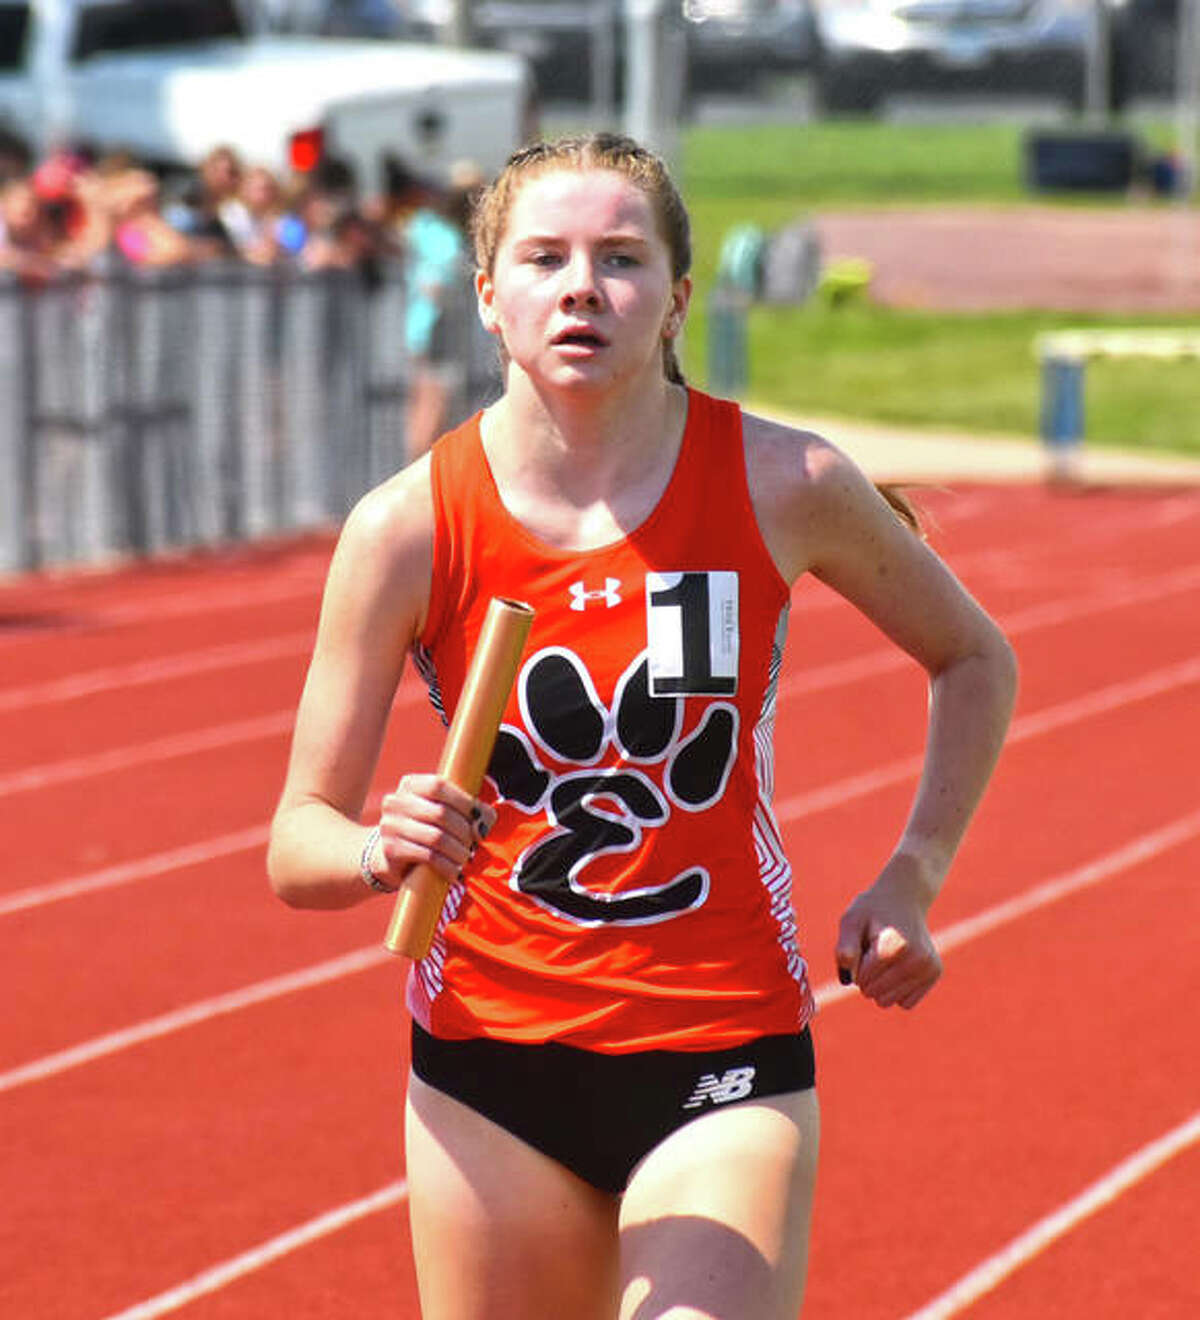 Edwardsville's Riley Knoyle finishes off the win in the 3,200-meter relay at the Class 3A O'Fallon Sectional on Thursday.